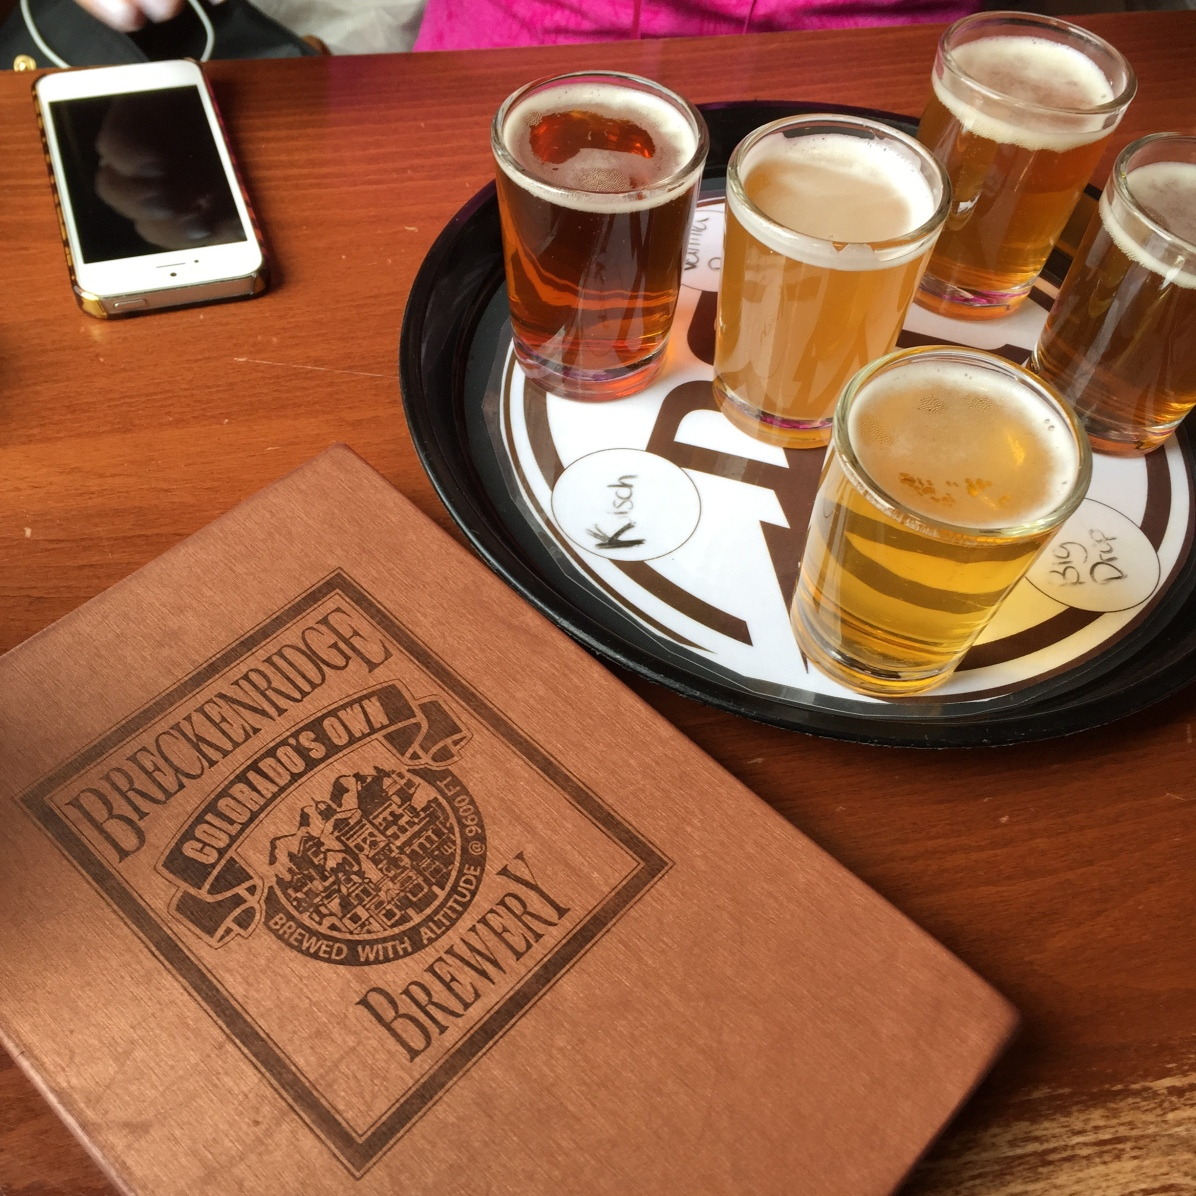 Another flight of beers at Breckenridge brewery with Maria!